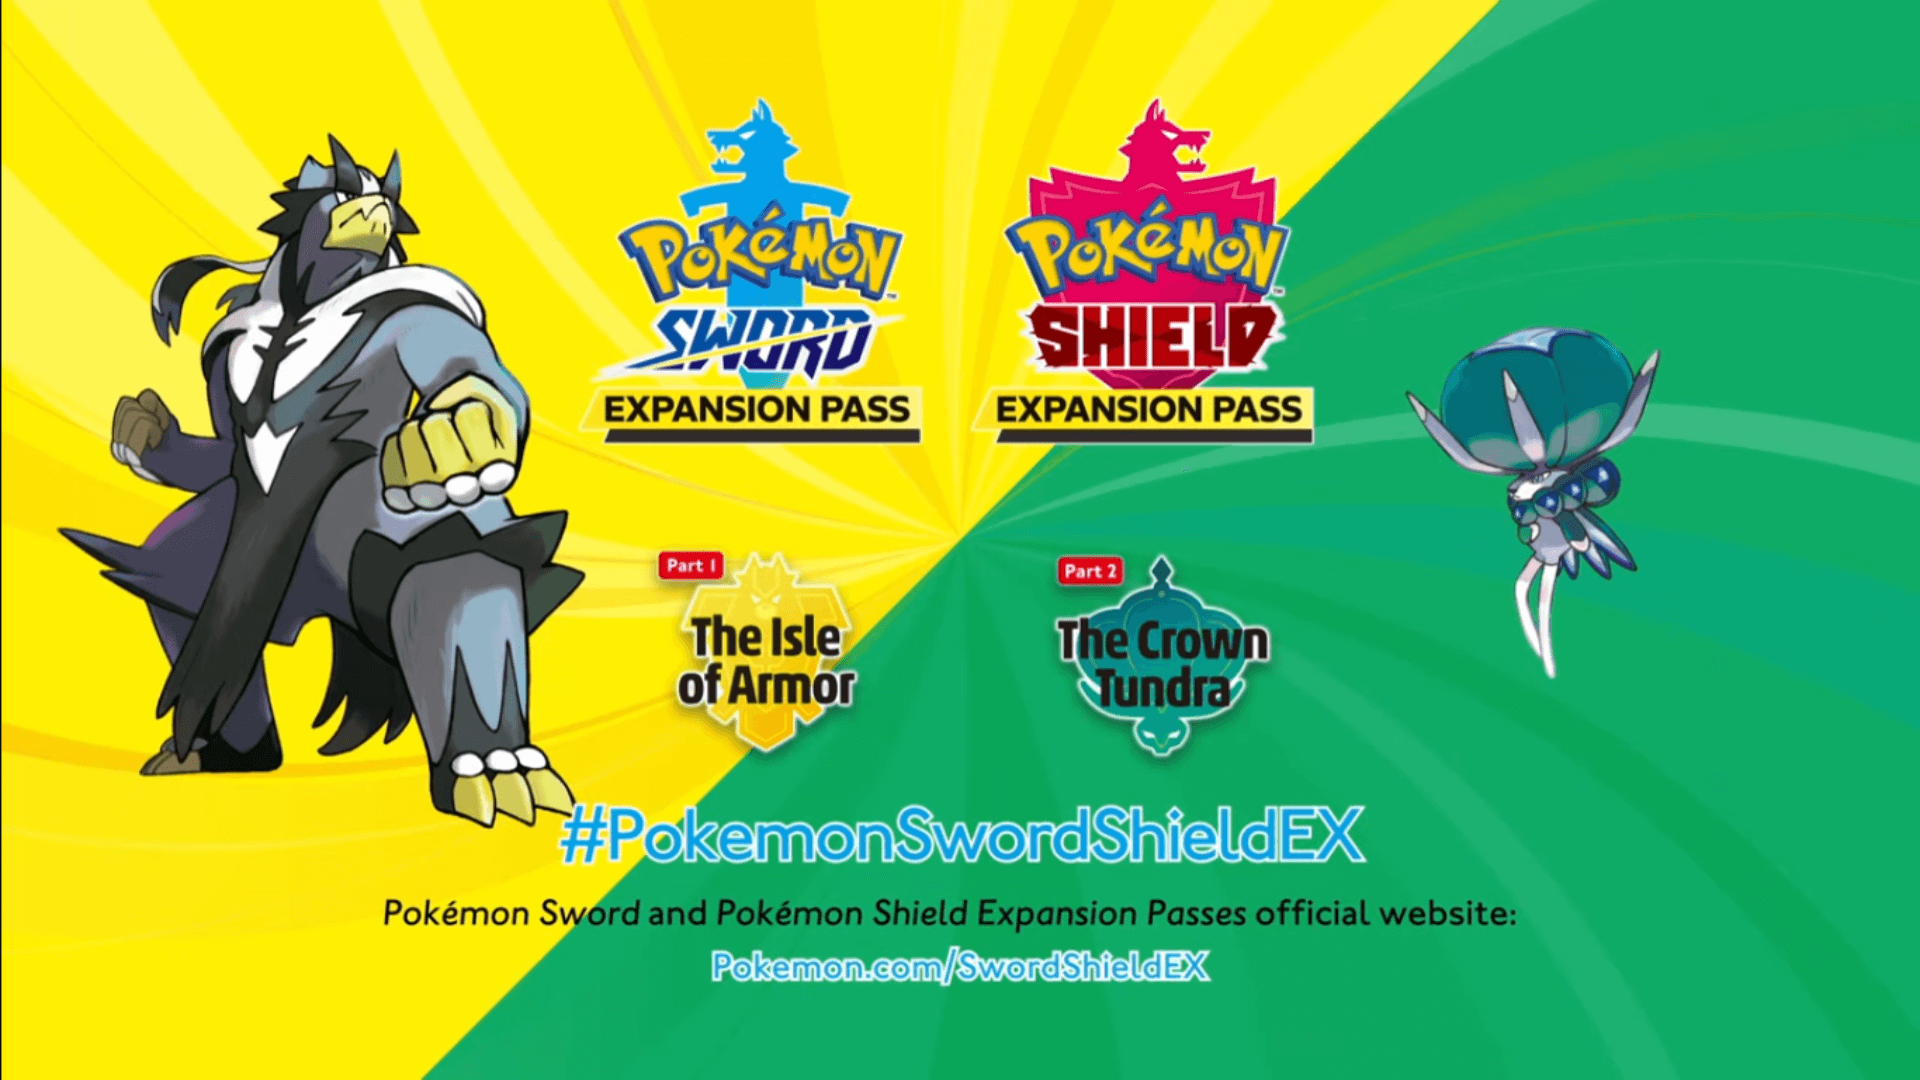 Pokémon Sword and Shield Expansion Pass Coming